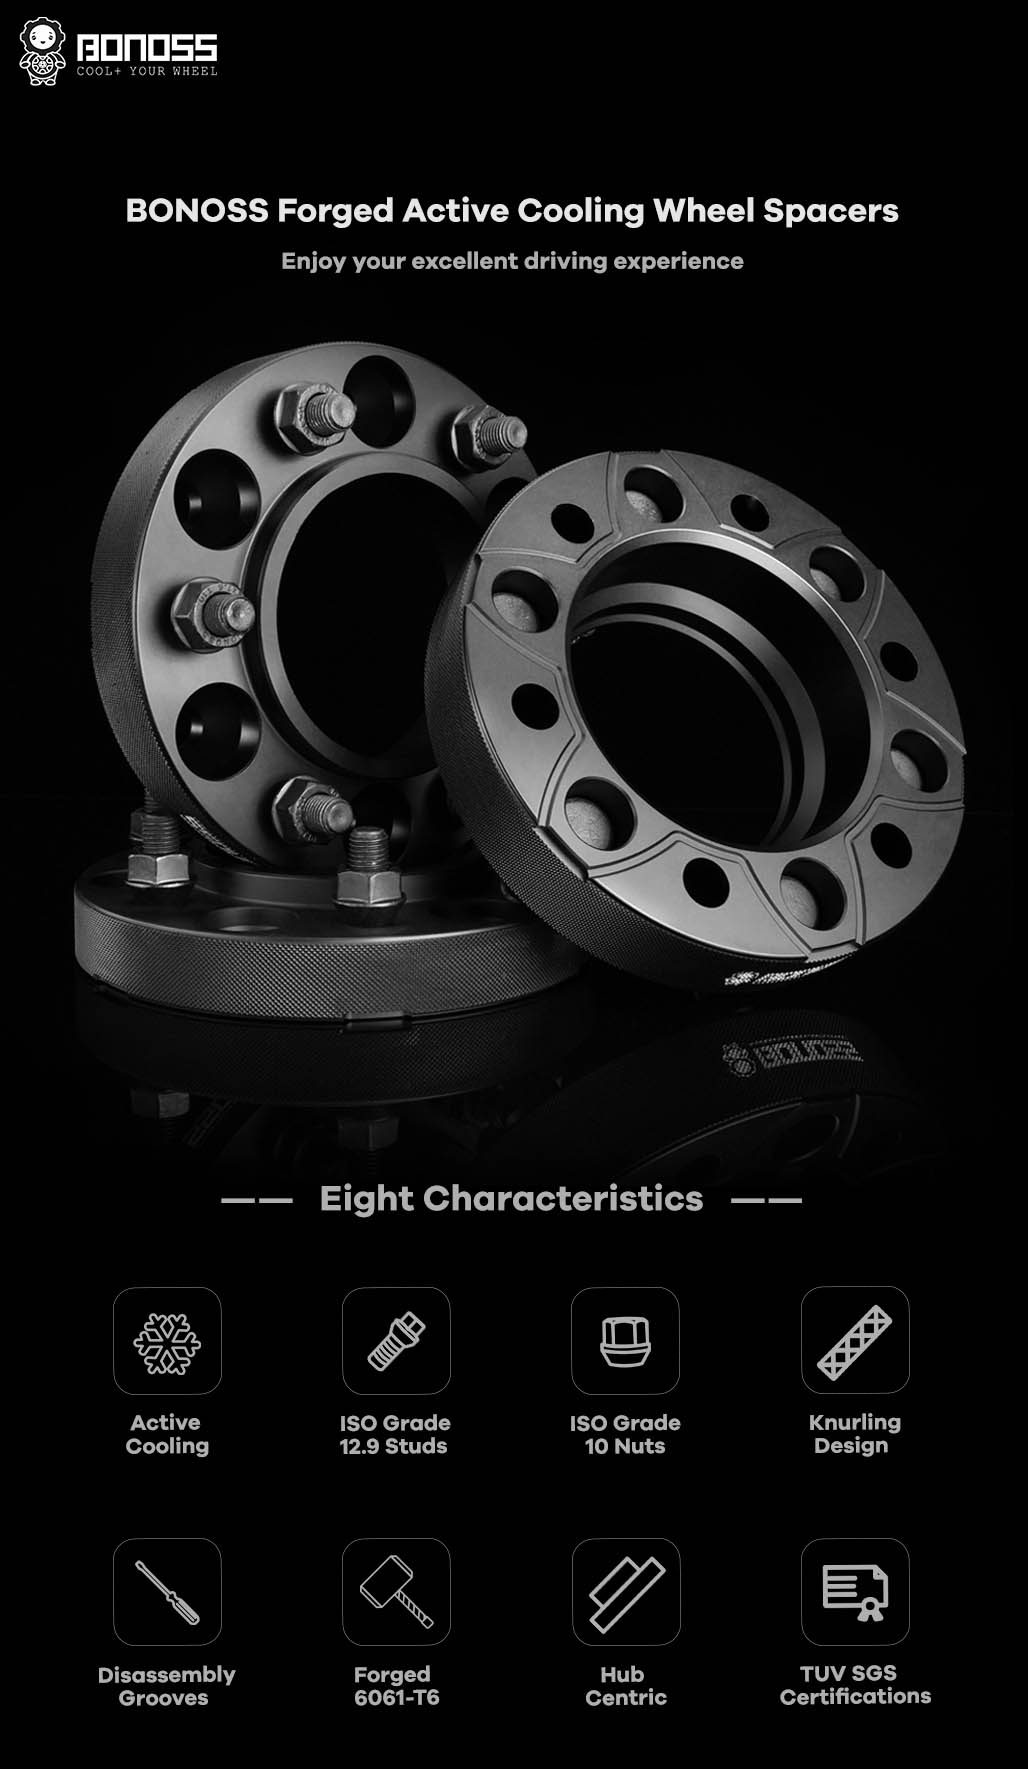 AL6061-T6 BONOSS-forged-active-cooling-wheel-spacer-6X139.7-107.1-M12X1.5-by-lulu-1